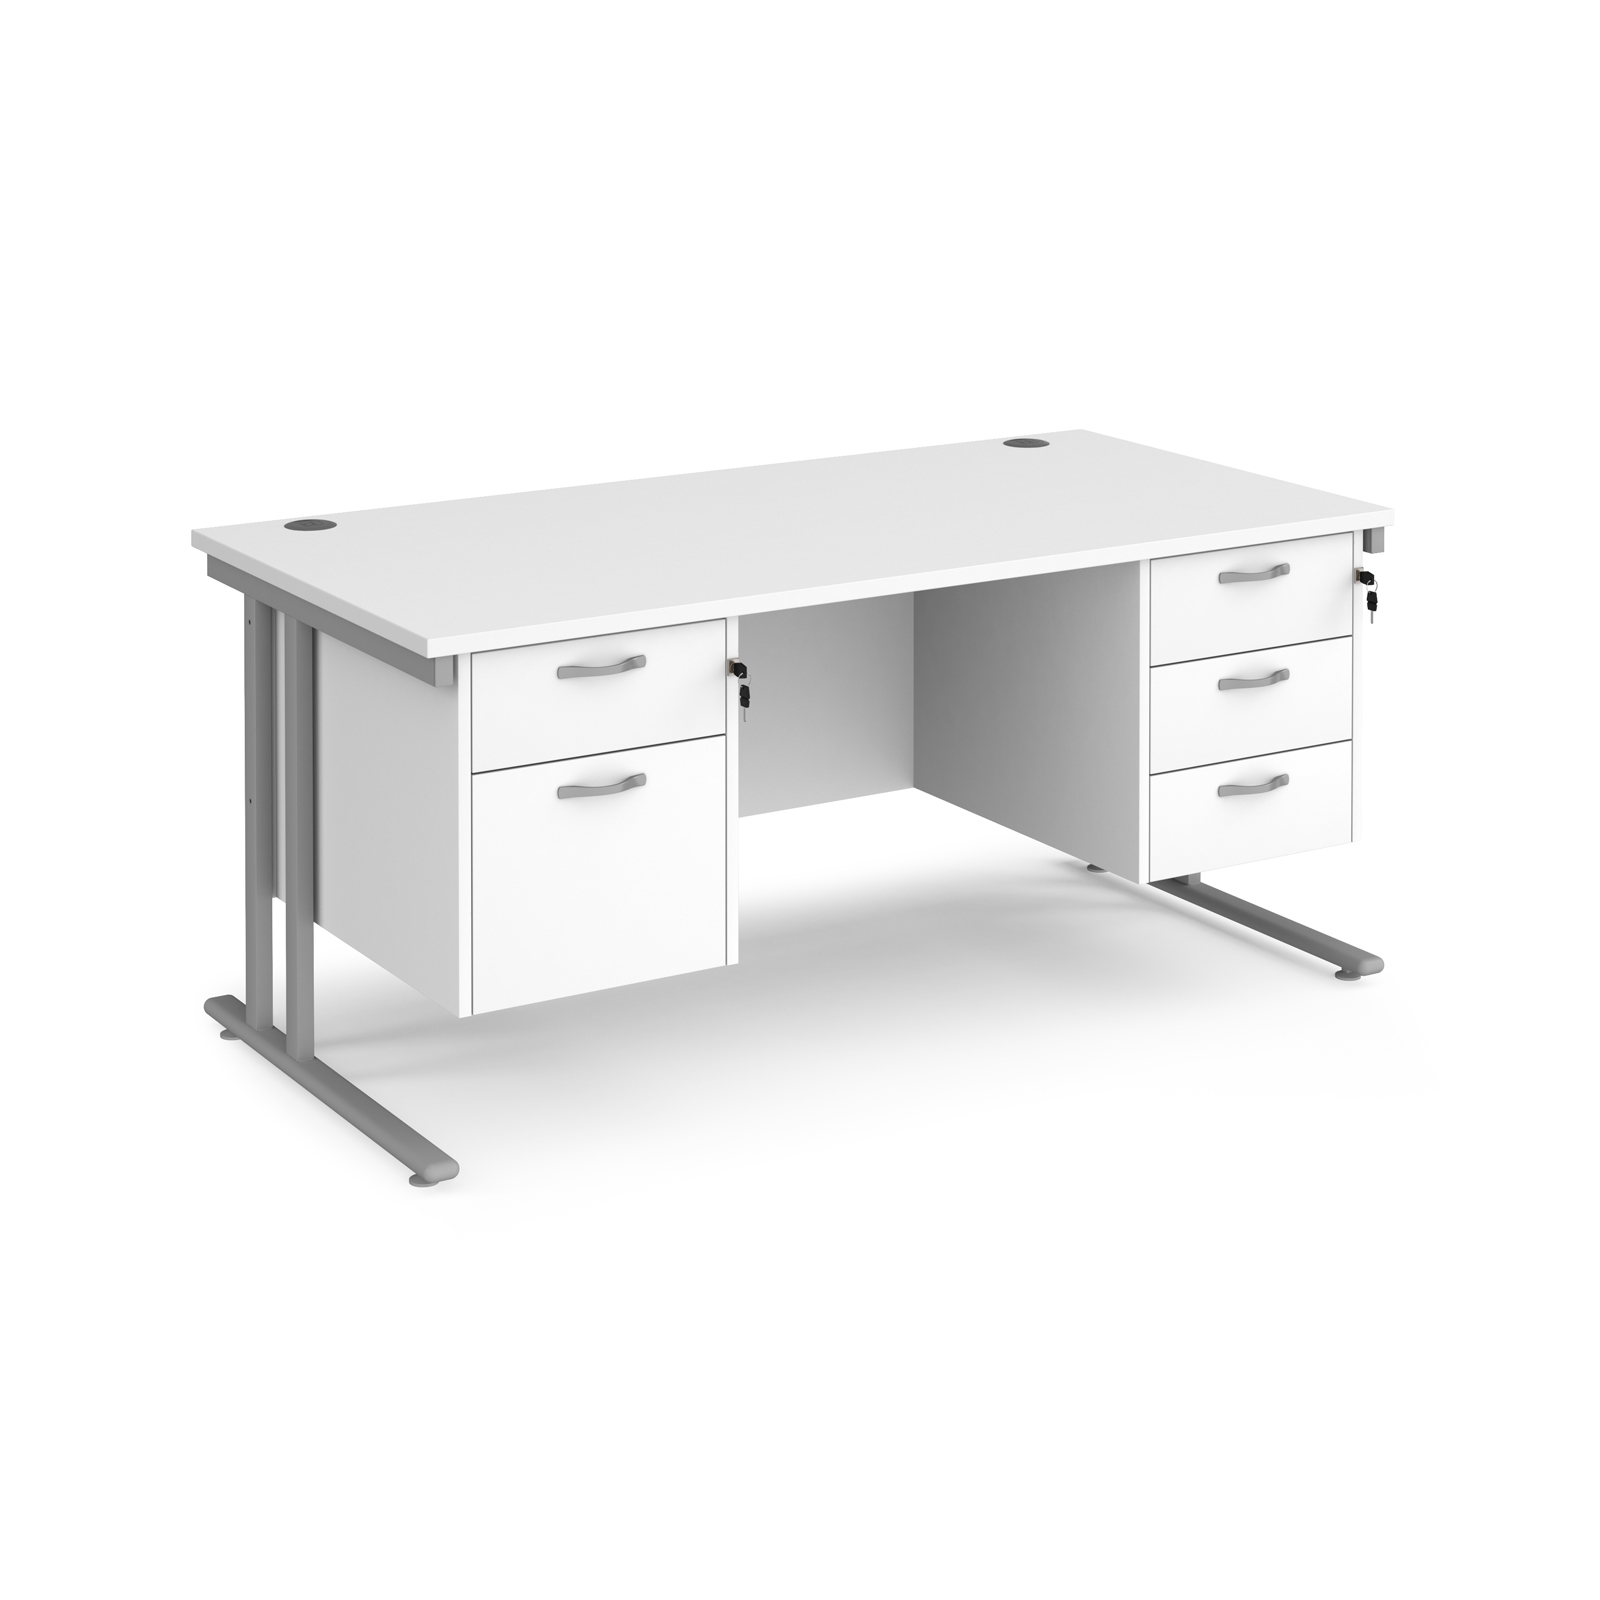 Maestro 25 straight desk 1600mm x 800mm with 2 and 3 drawer pedestals - silver cantilever leg frame, white top